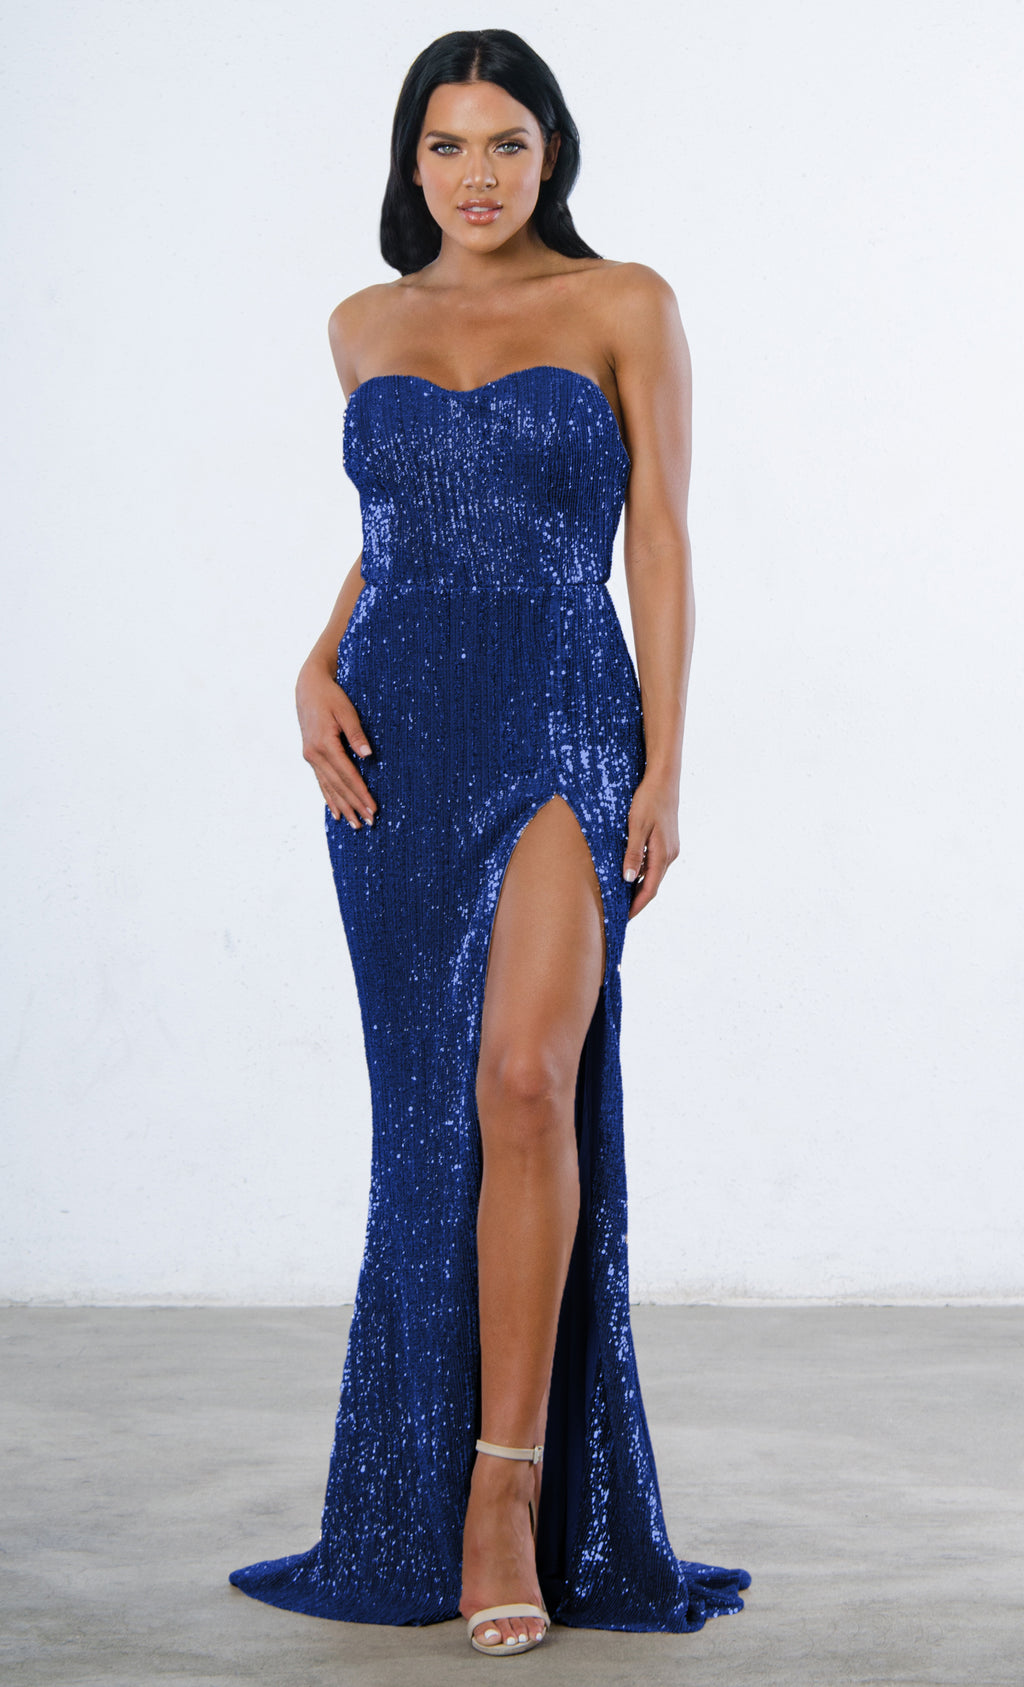 Indie XO Show Me Some Love Blue Sequin Strapless Sweetheart Neck High Slit Fishtail Maxi Dress - 4 Colors Available